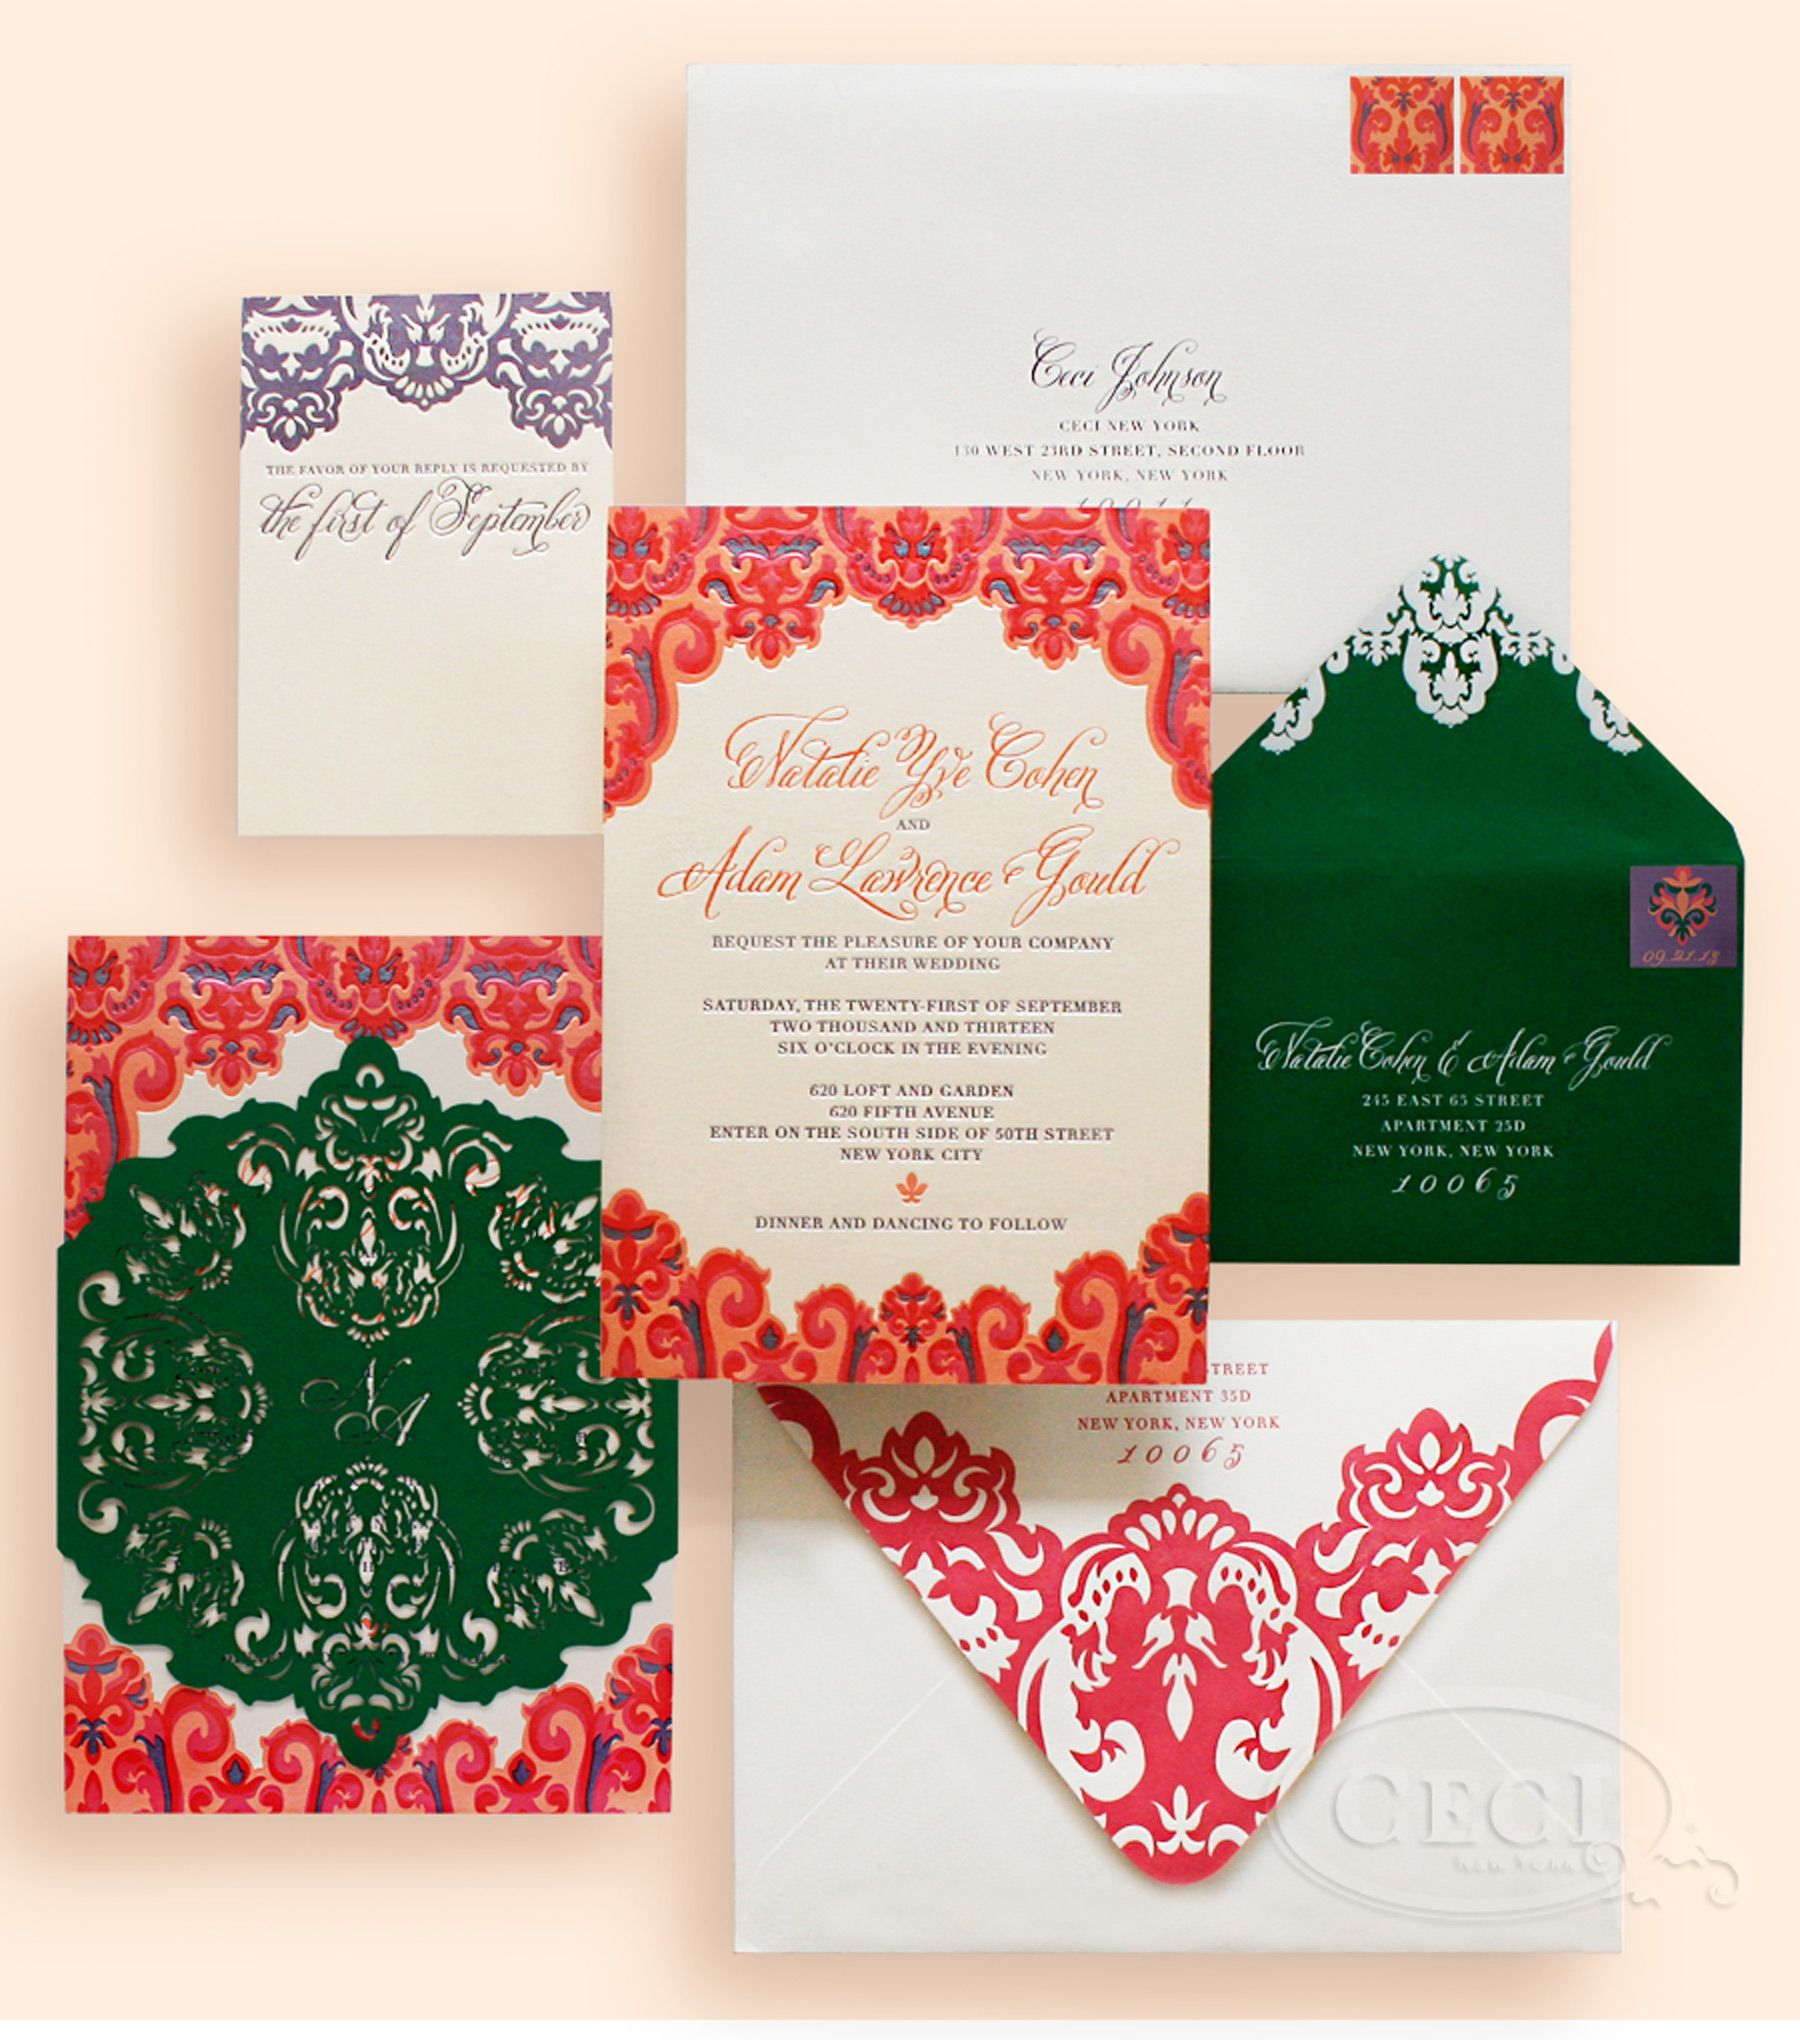 Luxury Wedding Invitations by Ceci New York - Our Muse - Colorful ...